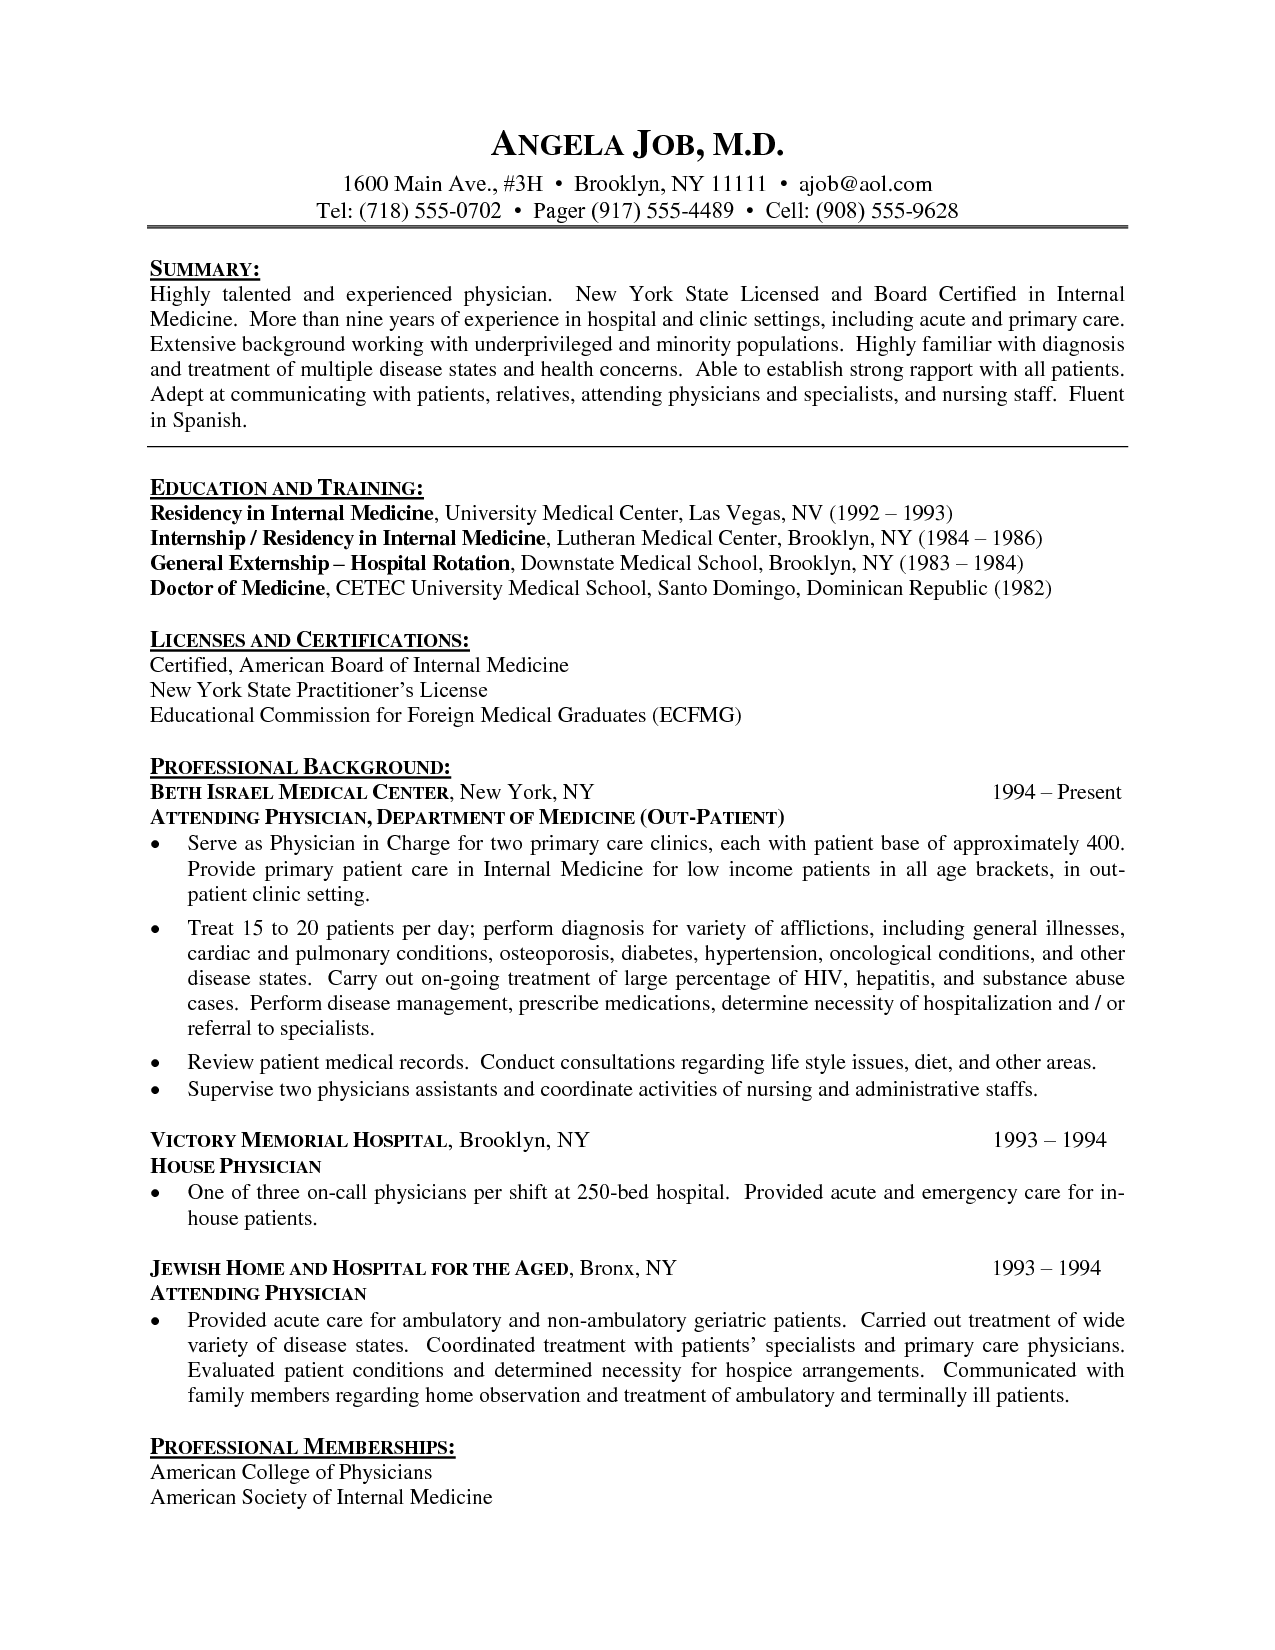 resume template  medical doctor cv resume  physician cv resumes  more